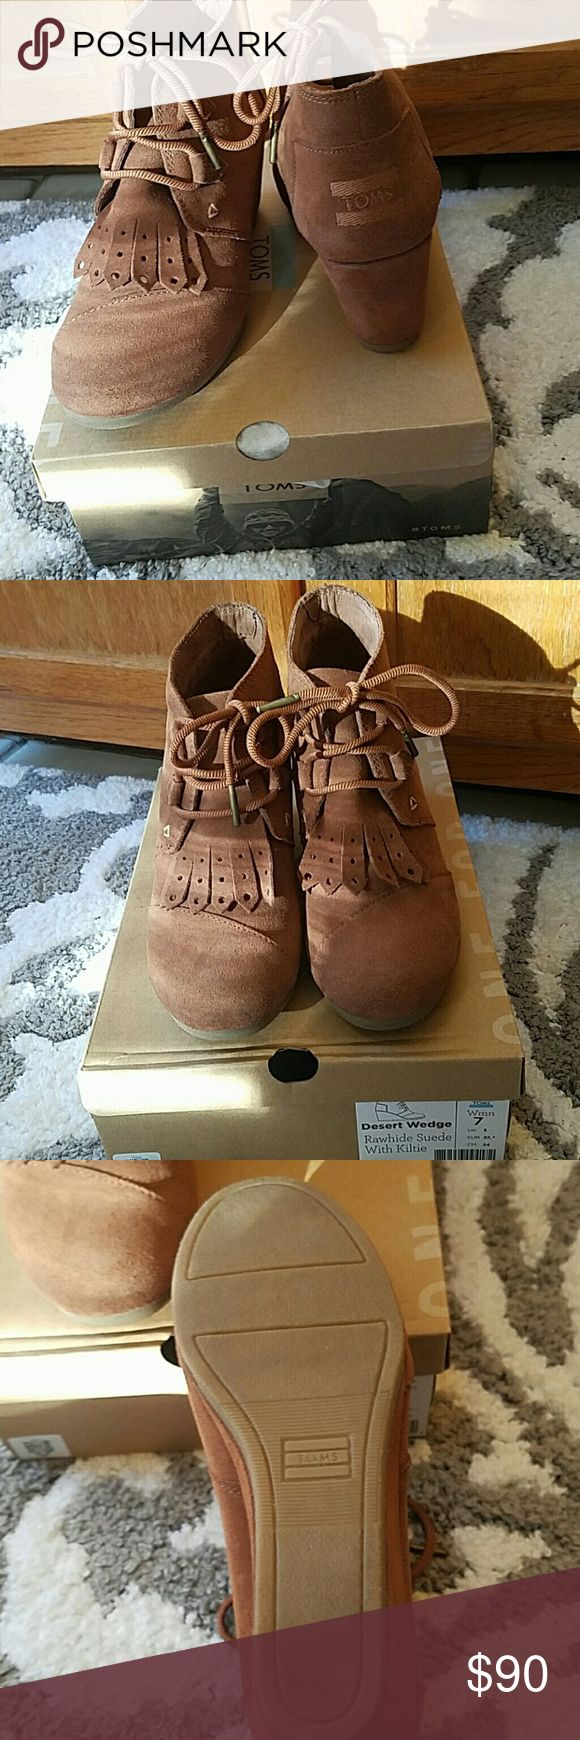 TOMS Desert Wedge Cute TOMS Sude boot wedge. Only worn once. Brand new condition. TOMS Shoes Ankle Boots & Booties